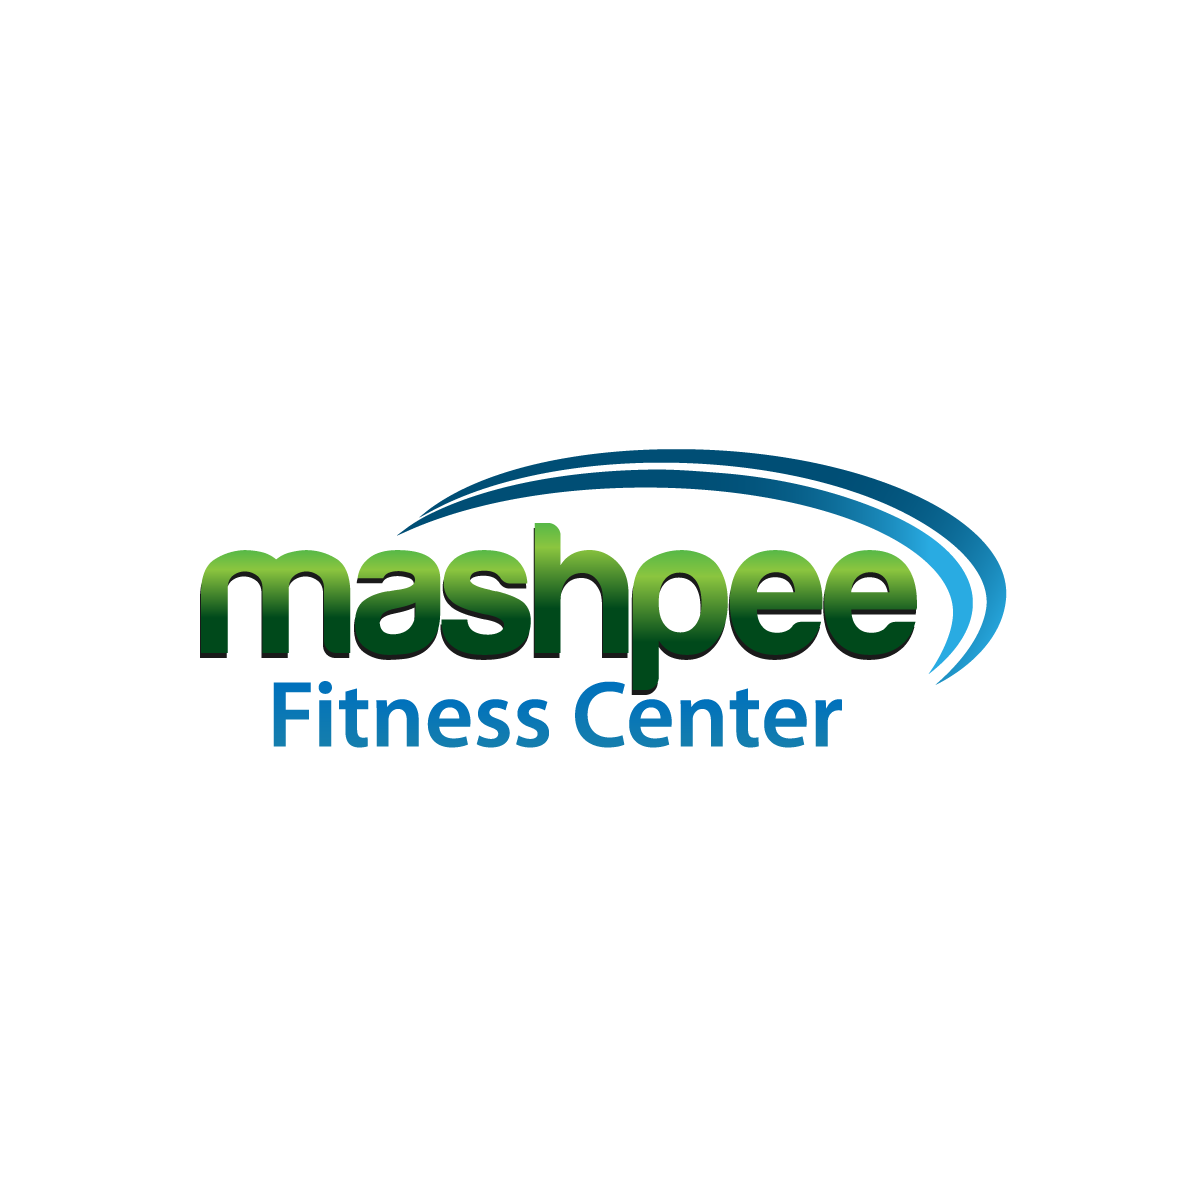 Logo Design by rockin - Entry No. 1 in the Logo Design Contest New Logo Design for Mashpee Fitness Center.